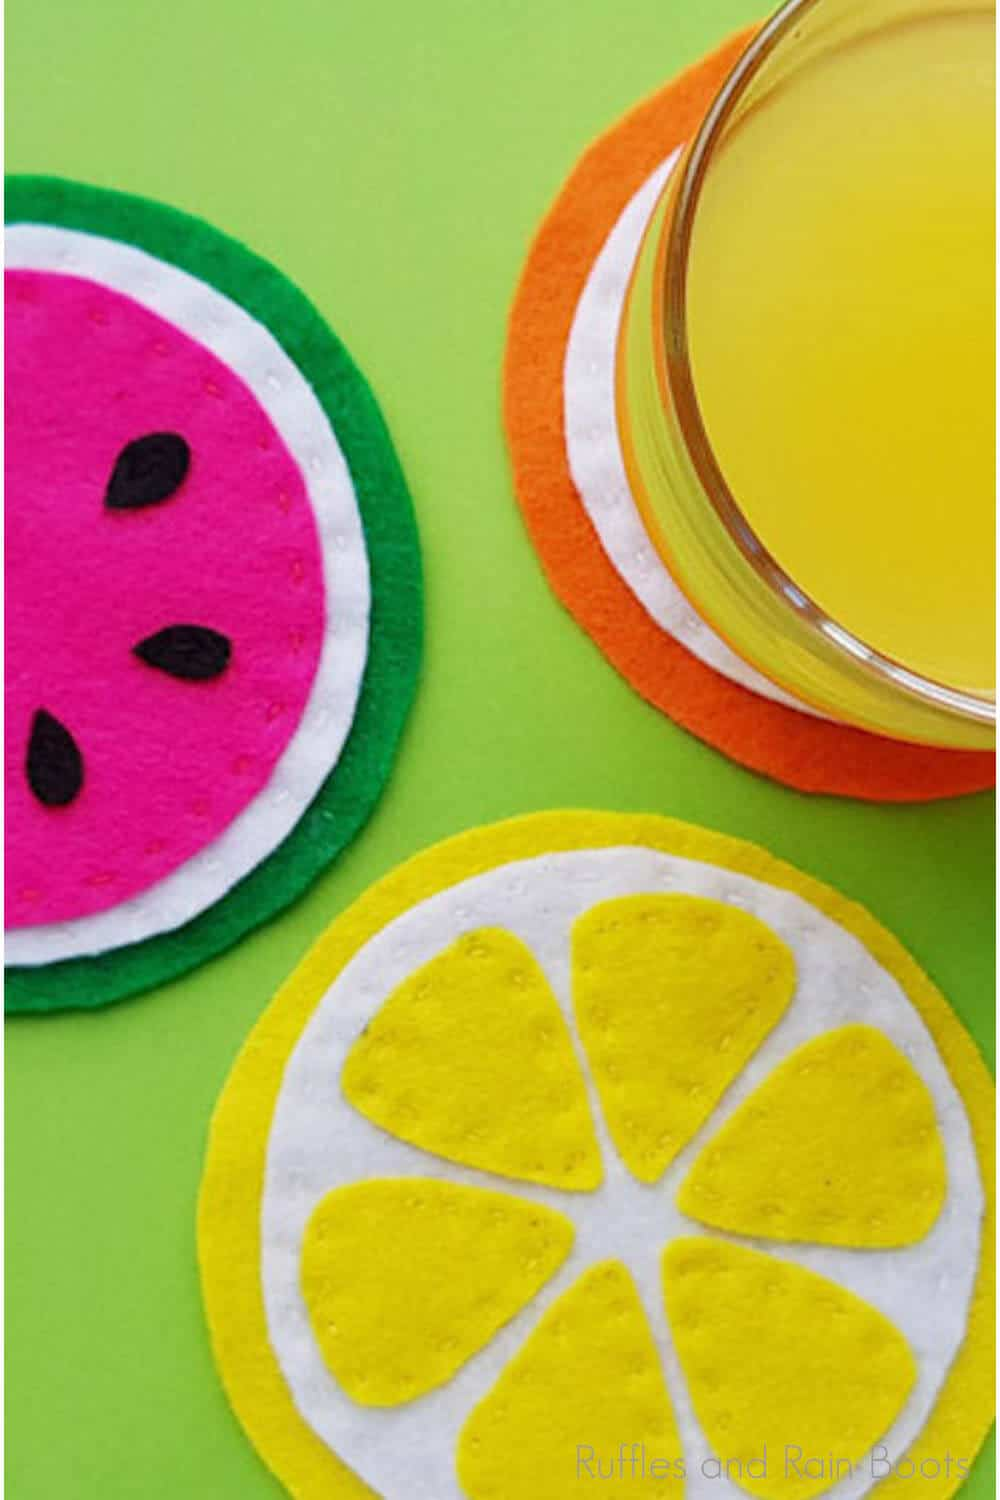 how to make coasters that look like slices of fruit